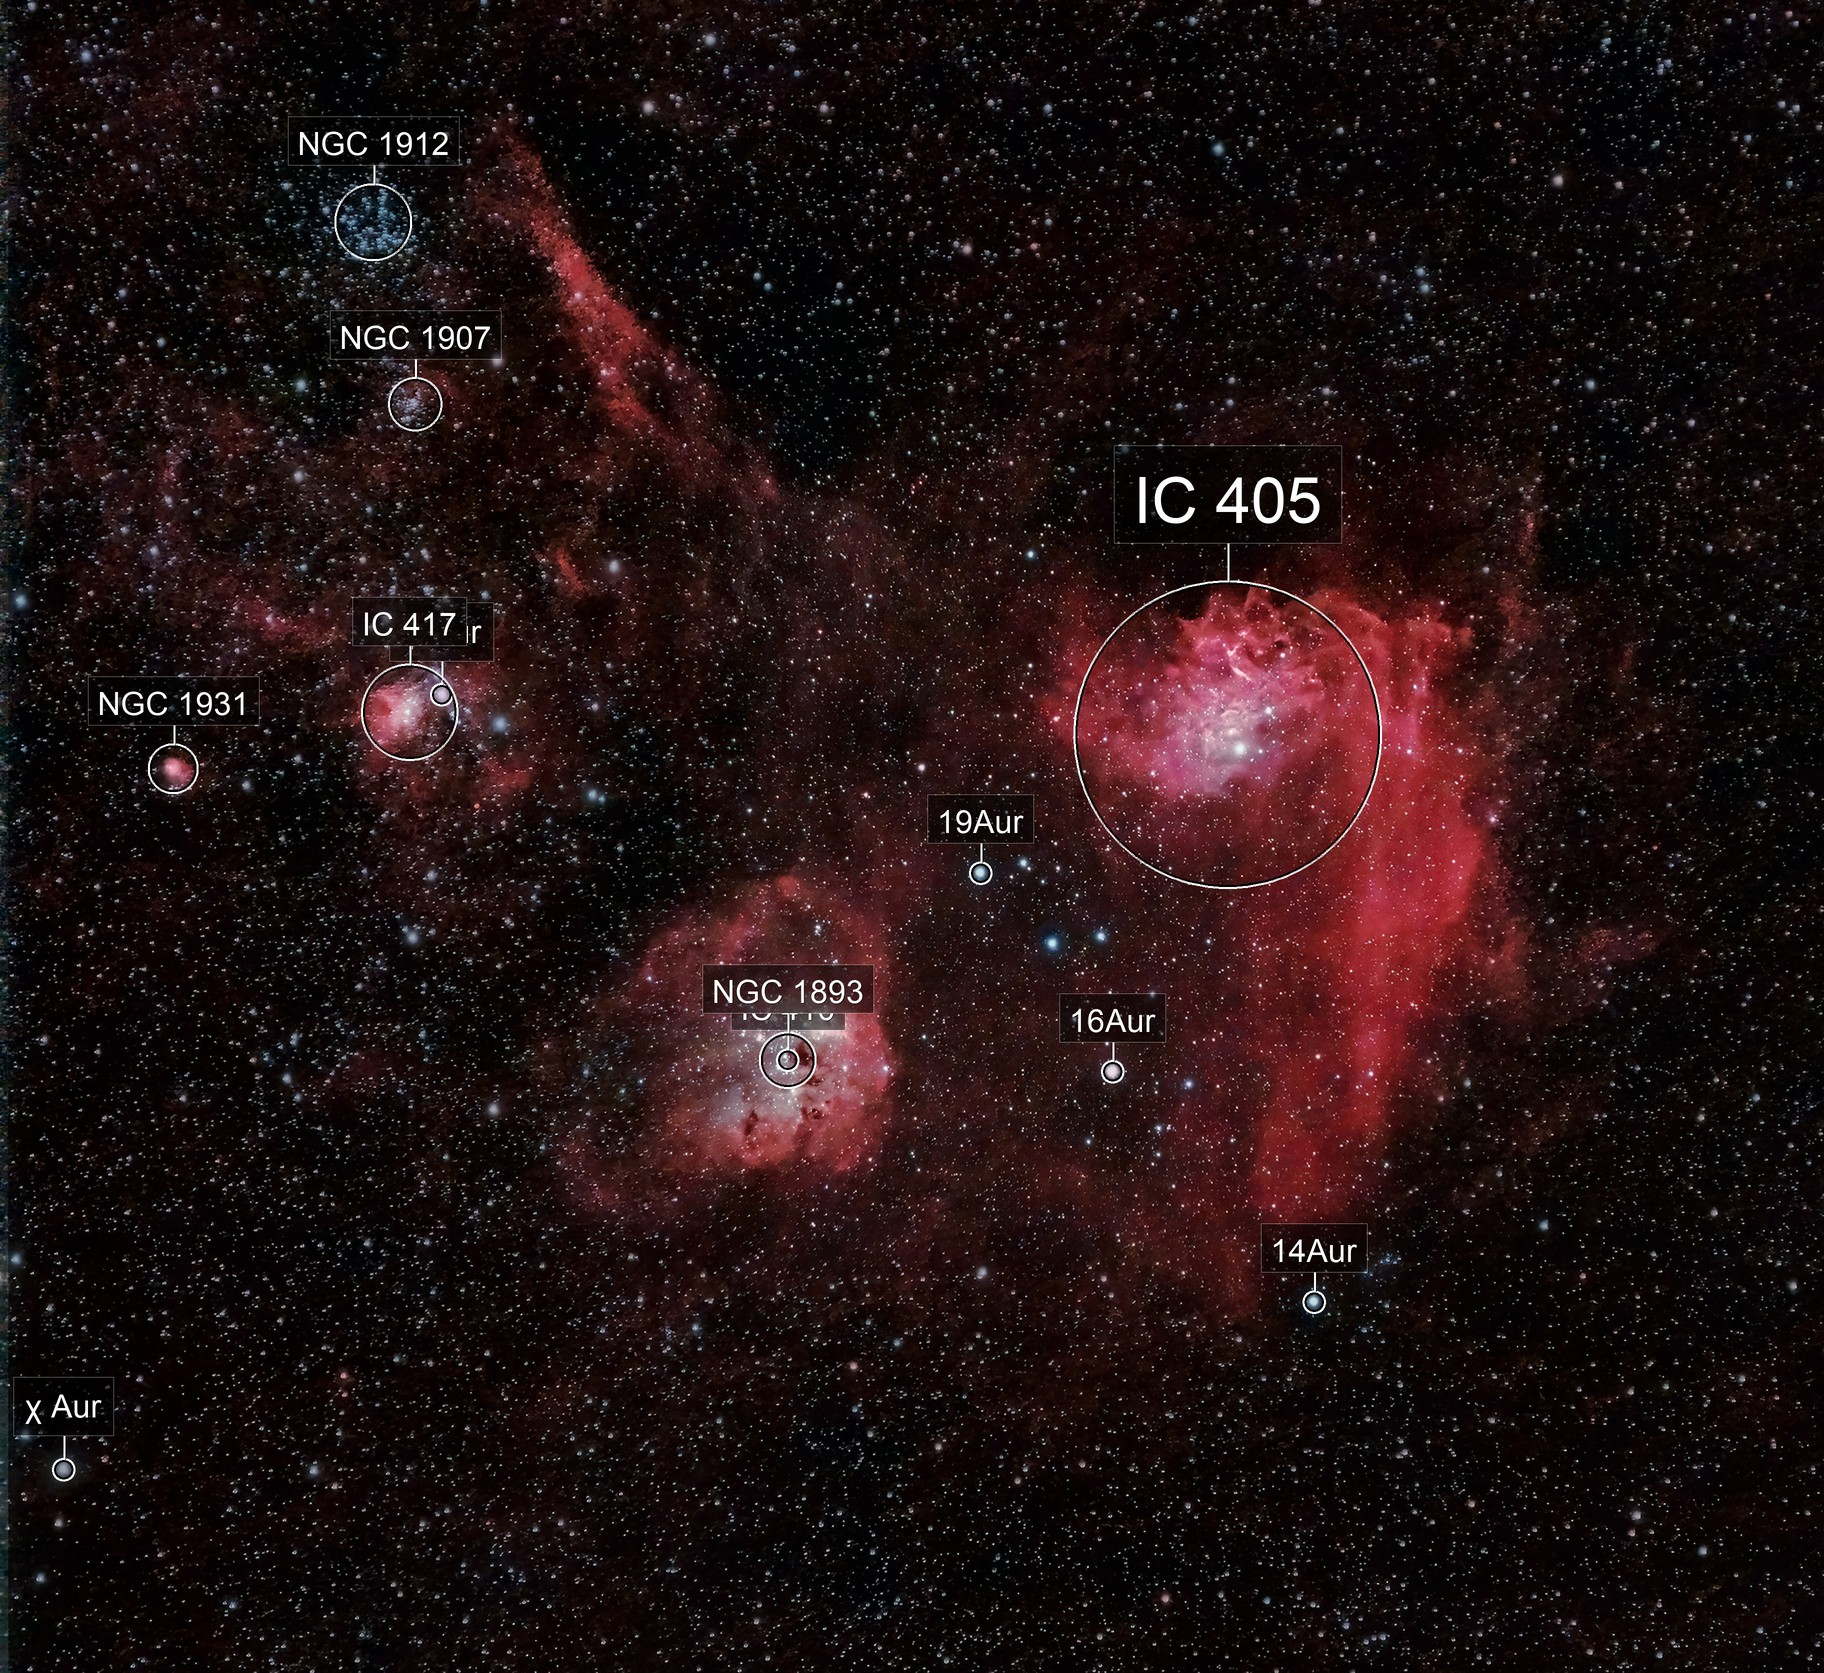 Ic 405 and 410 with old sovietic lens